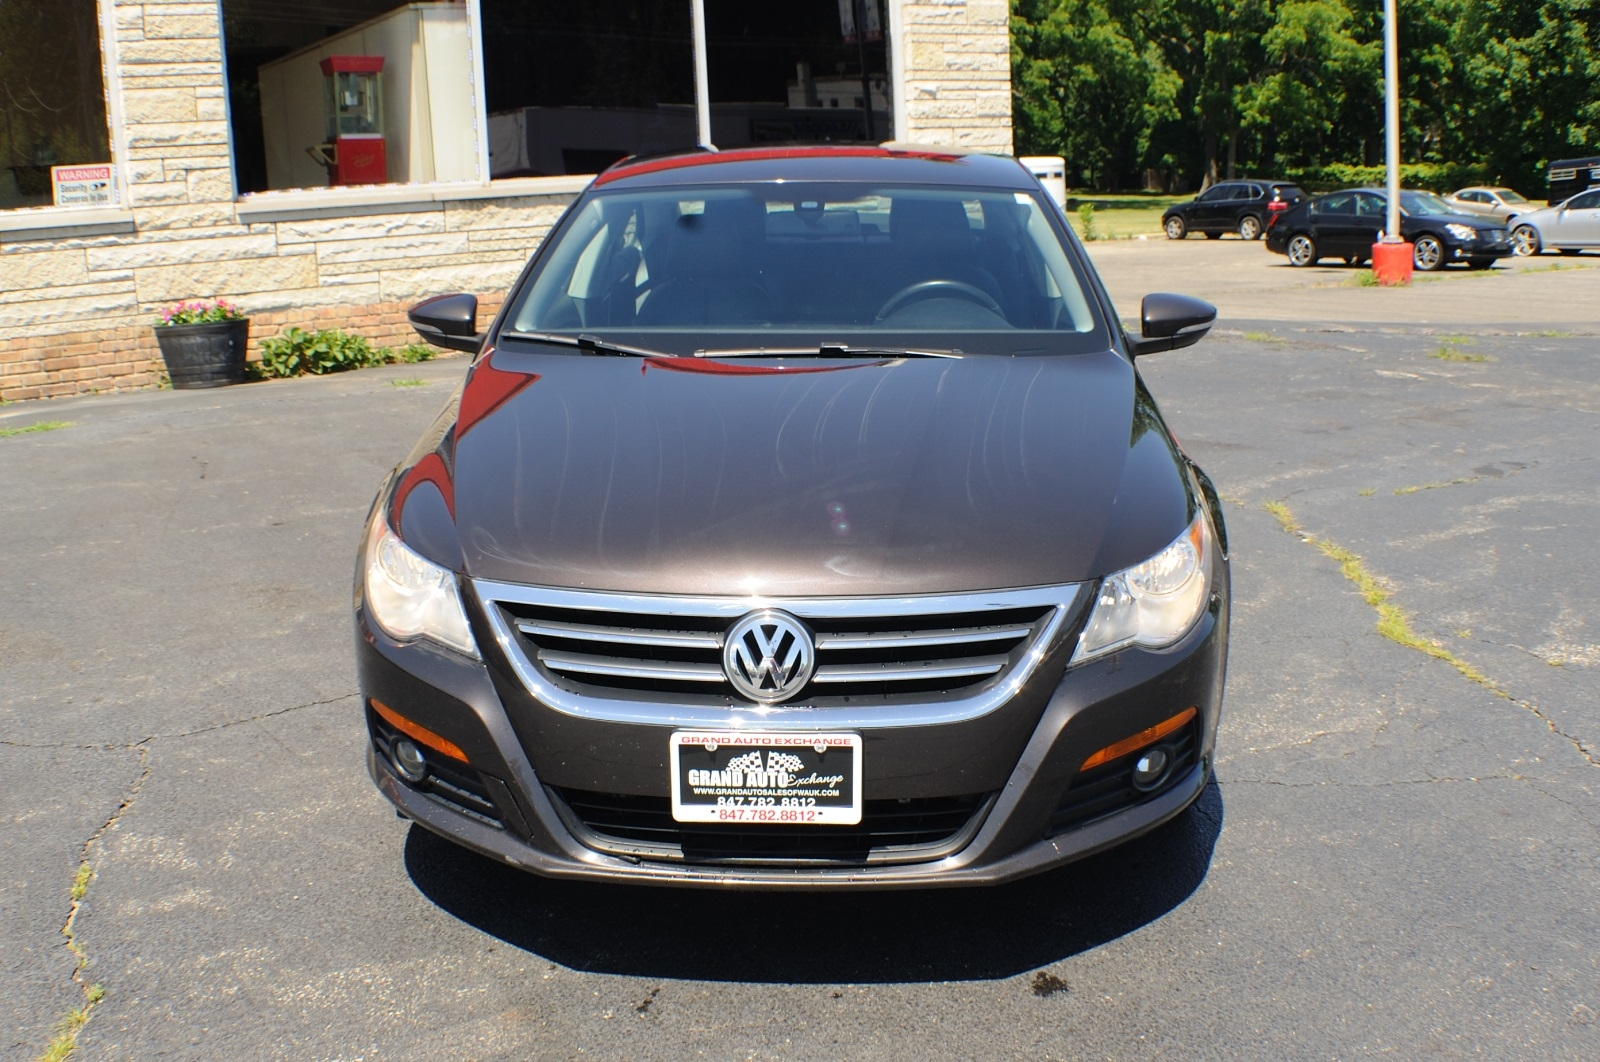 2009 Volkswagen VW CC Black Sedan used car sale Gurnee Kenosha Mchenry Chicago Illinois